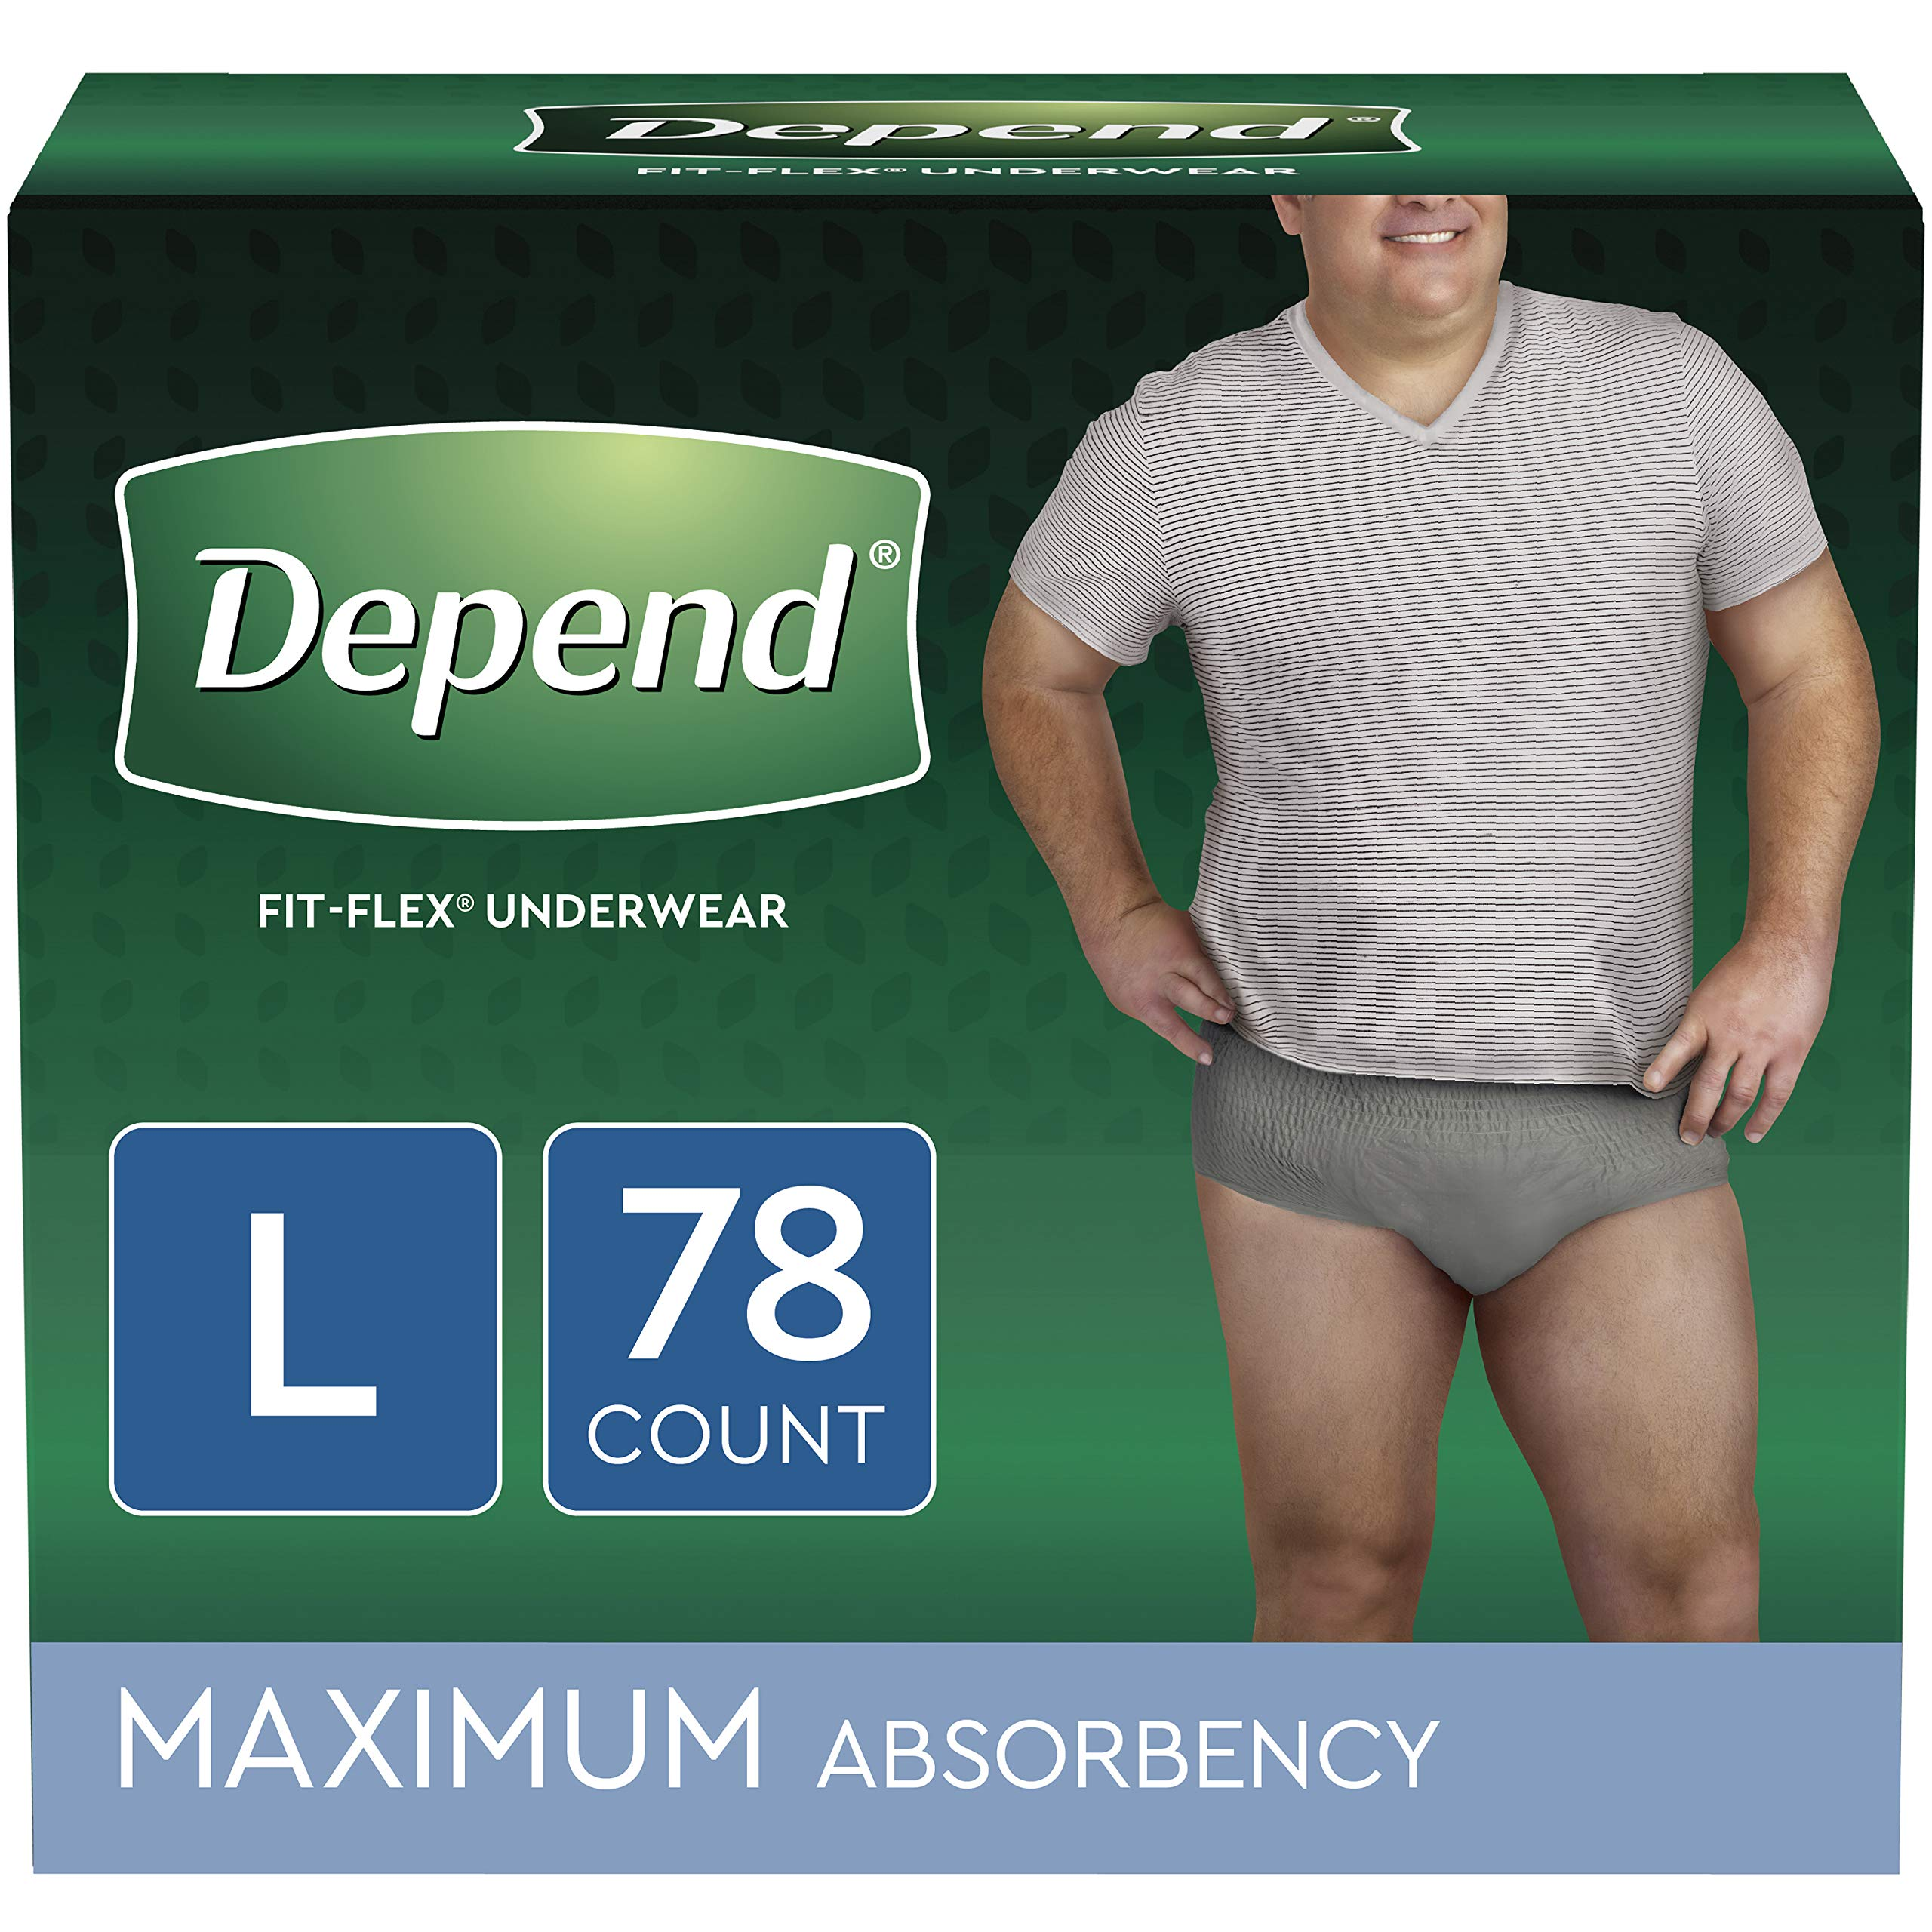 Depend FIT-FLEX Incontinence Underwear for Men, Maximum Absorbency, Disposable, L, Grey, 78 Count by Depend